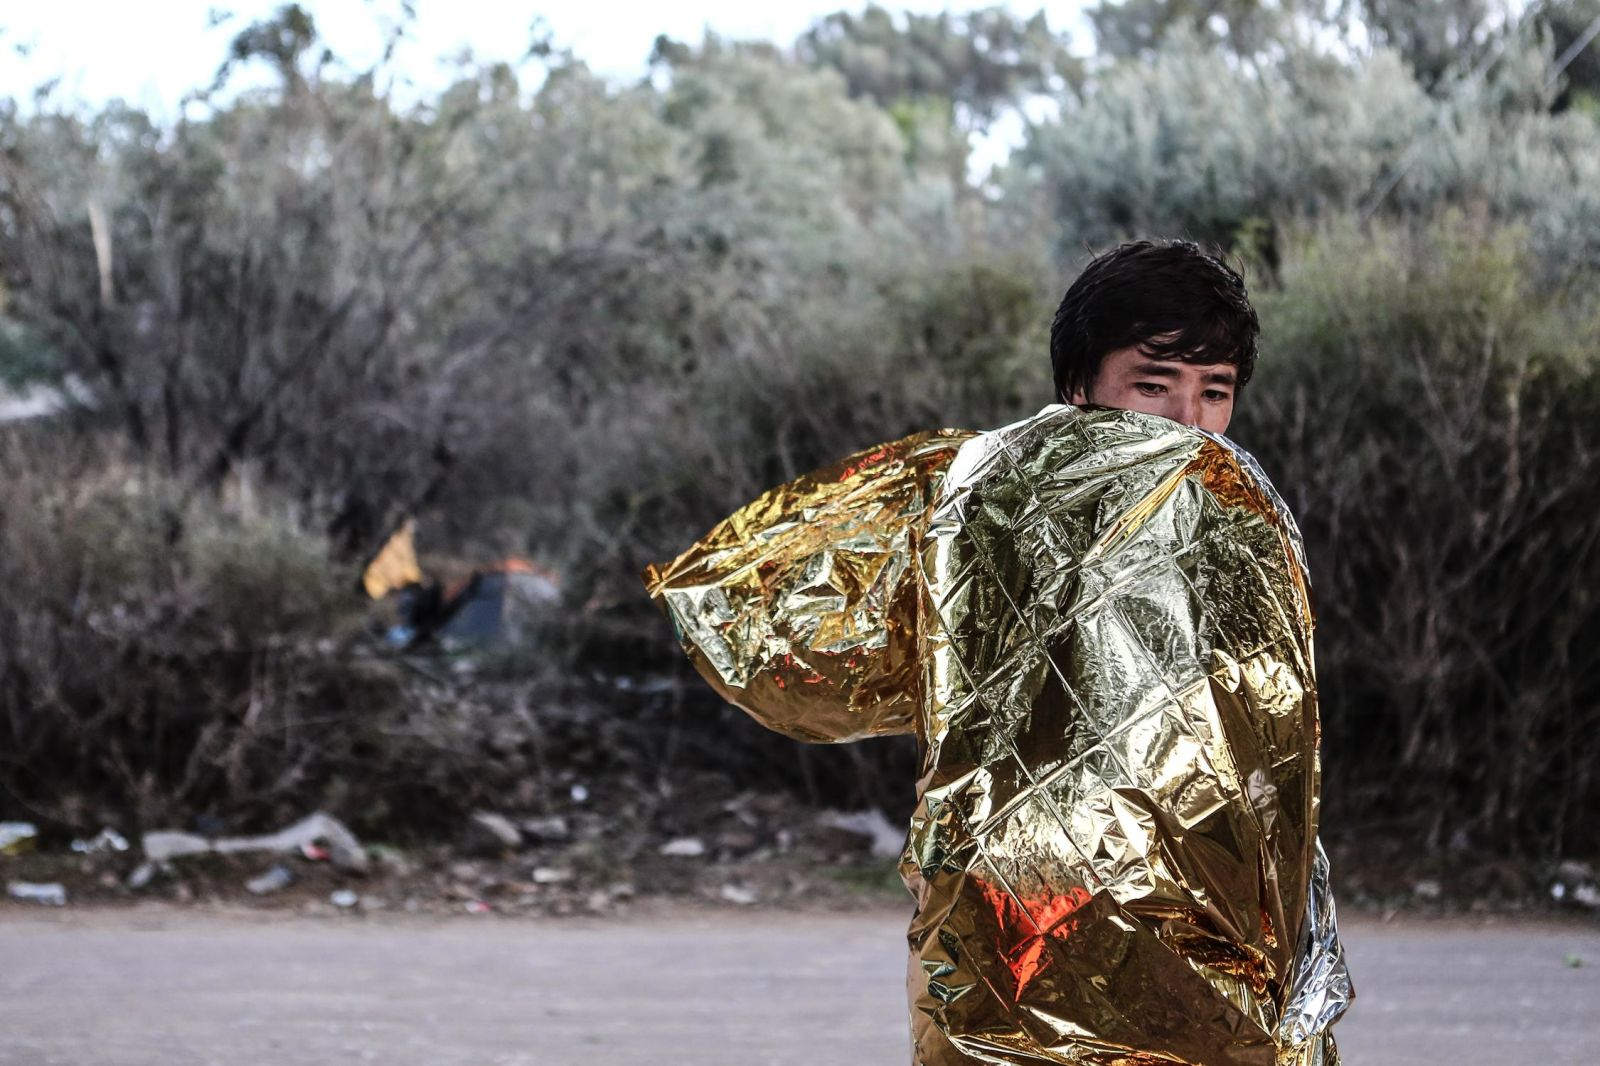 Lesbos, Greece on October 18, 2015. / Λέσβος, 18 Οκτωβρίου 2015.